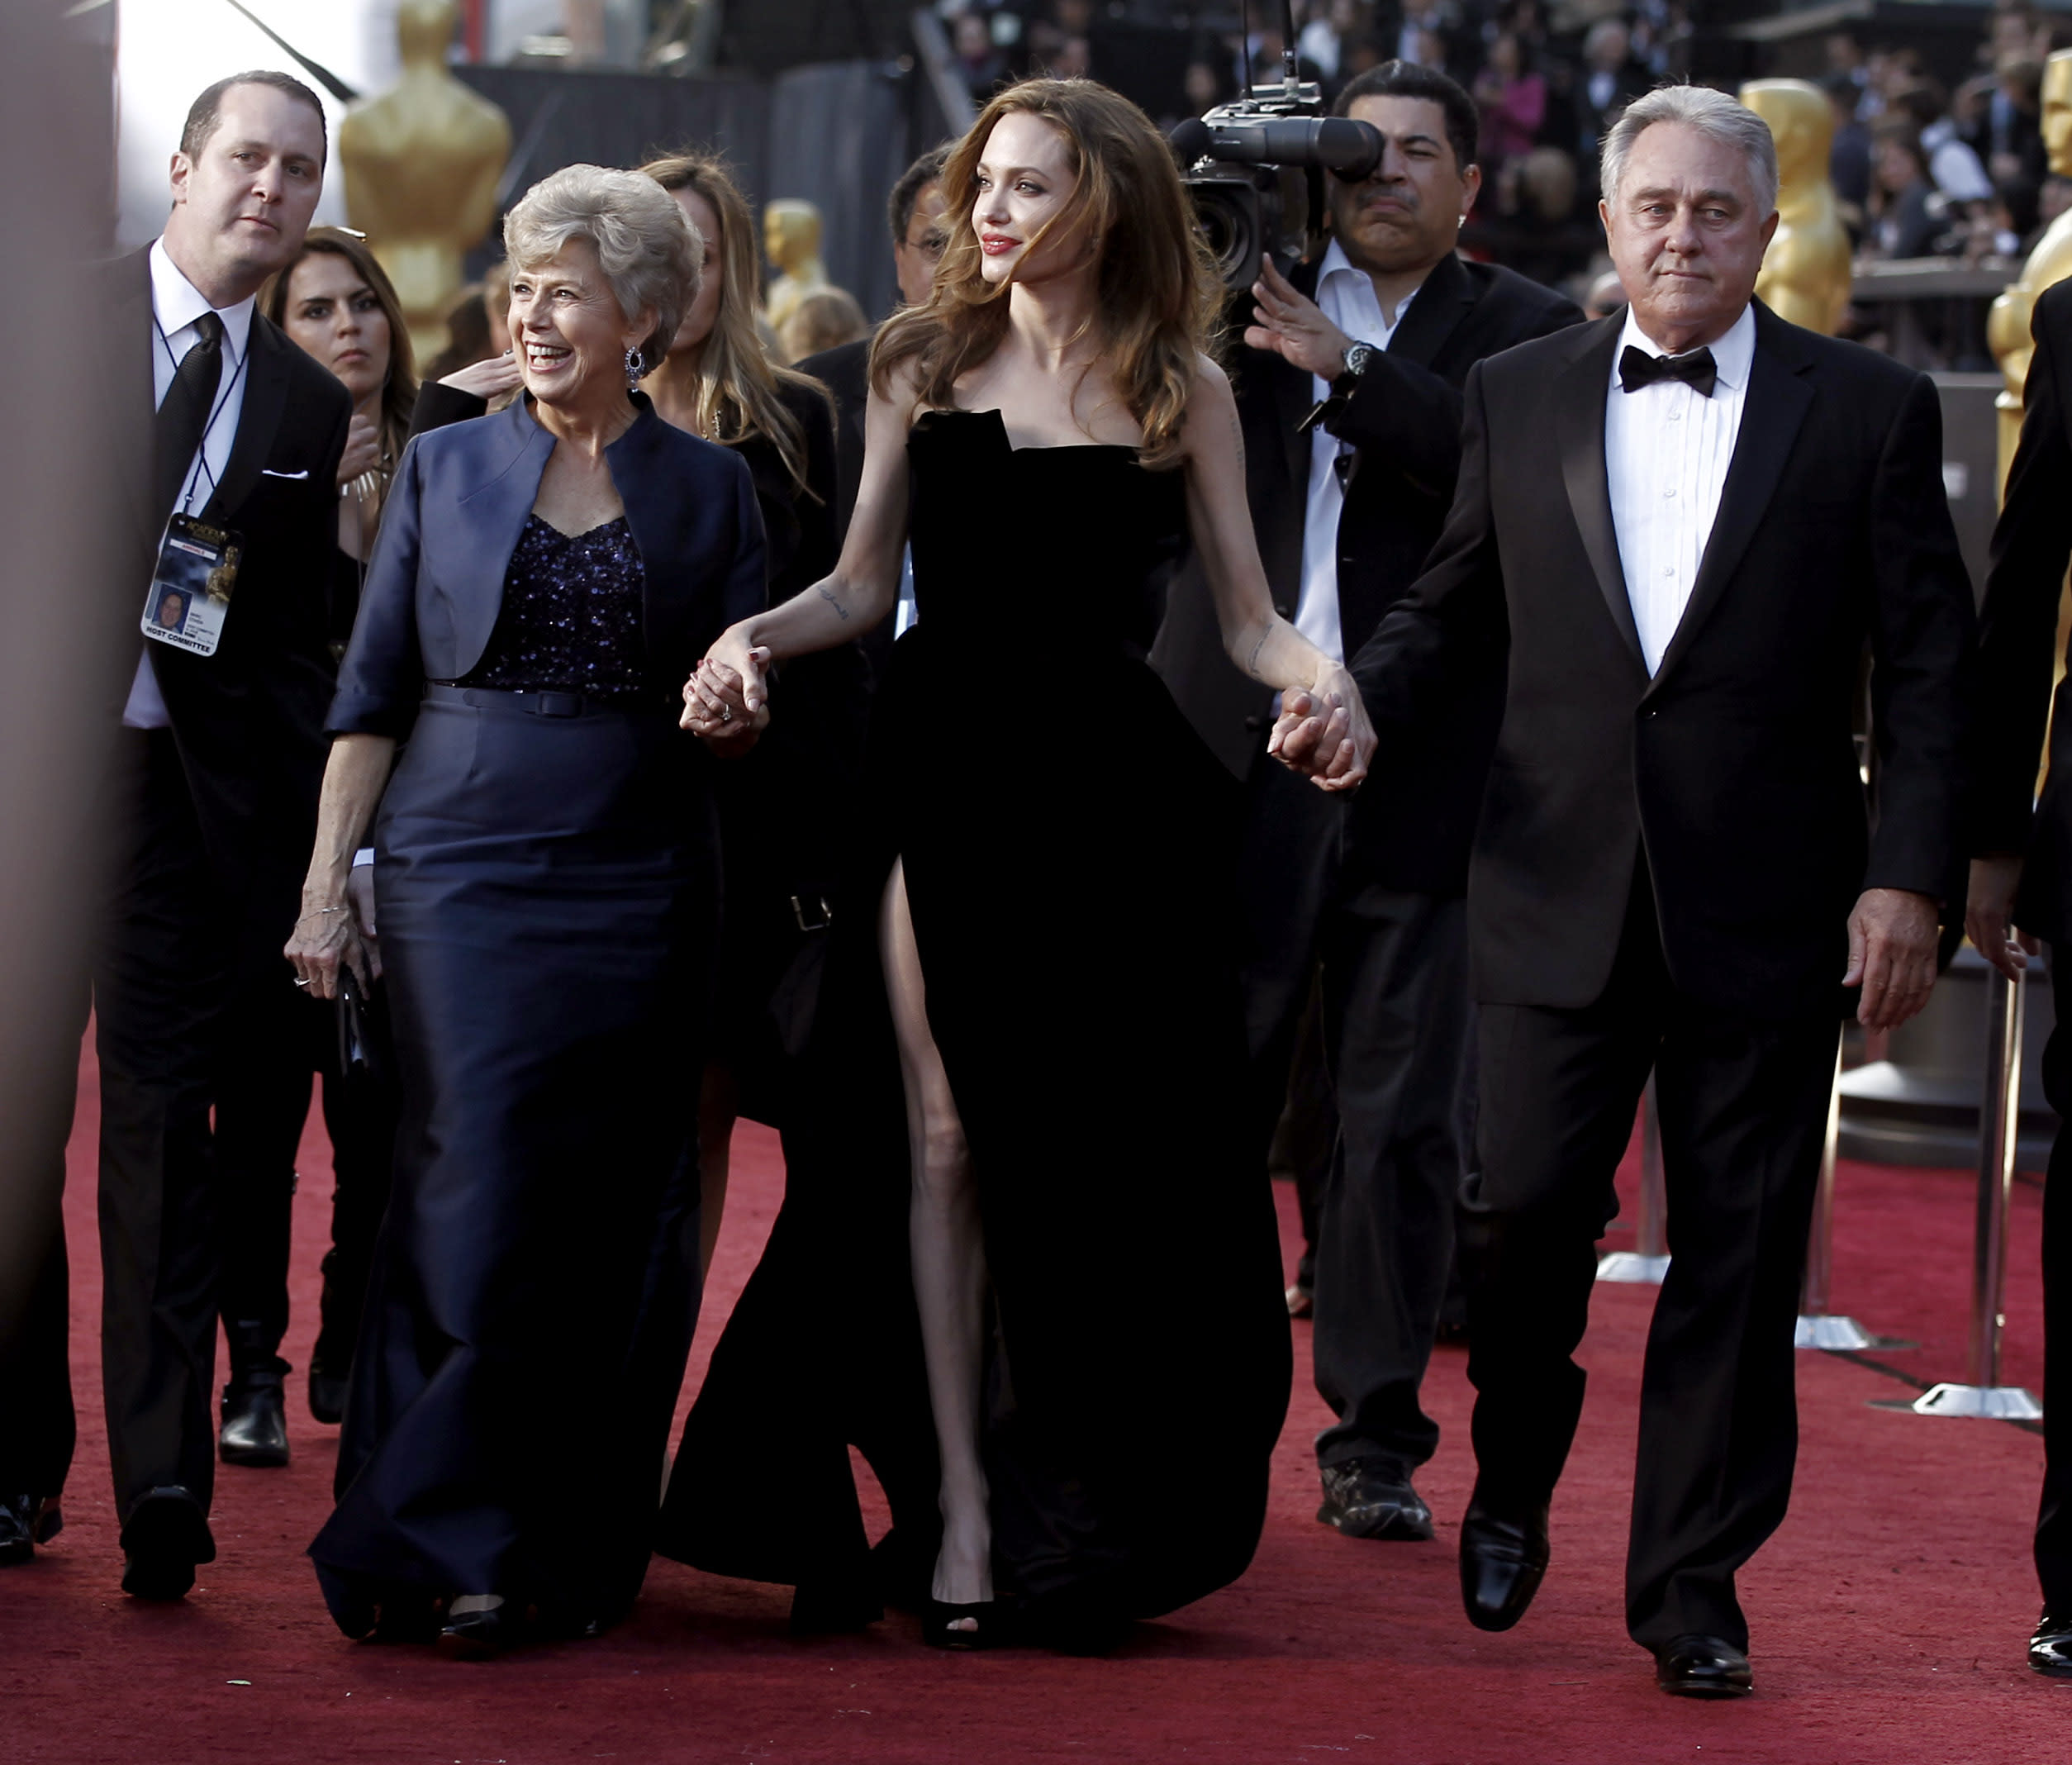 From left, Jane Pitt, Angelina Jolie and William Pitt arrive before the 84th Academy Awards on Sunday, Feb. 26, 2012, in the Hollywood section of Los Angeles. (AP Photo/Matt Sayles)